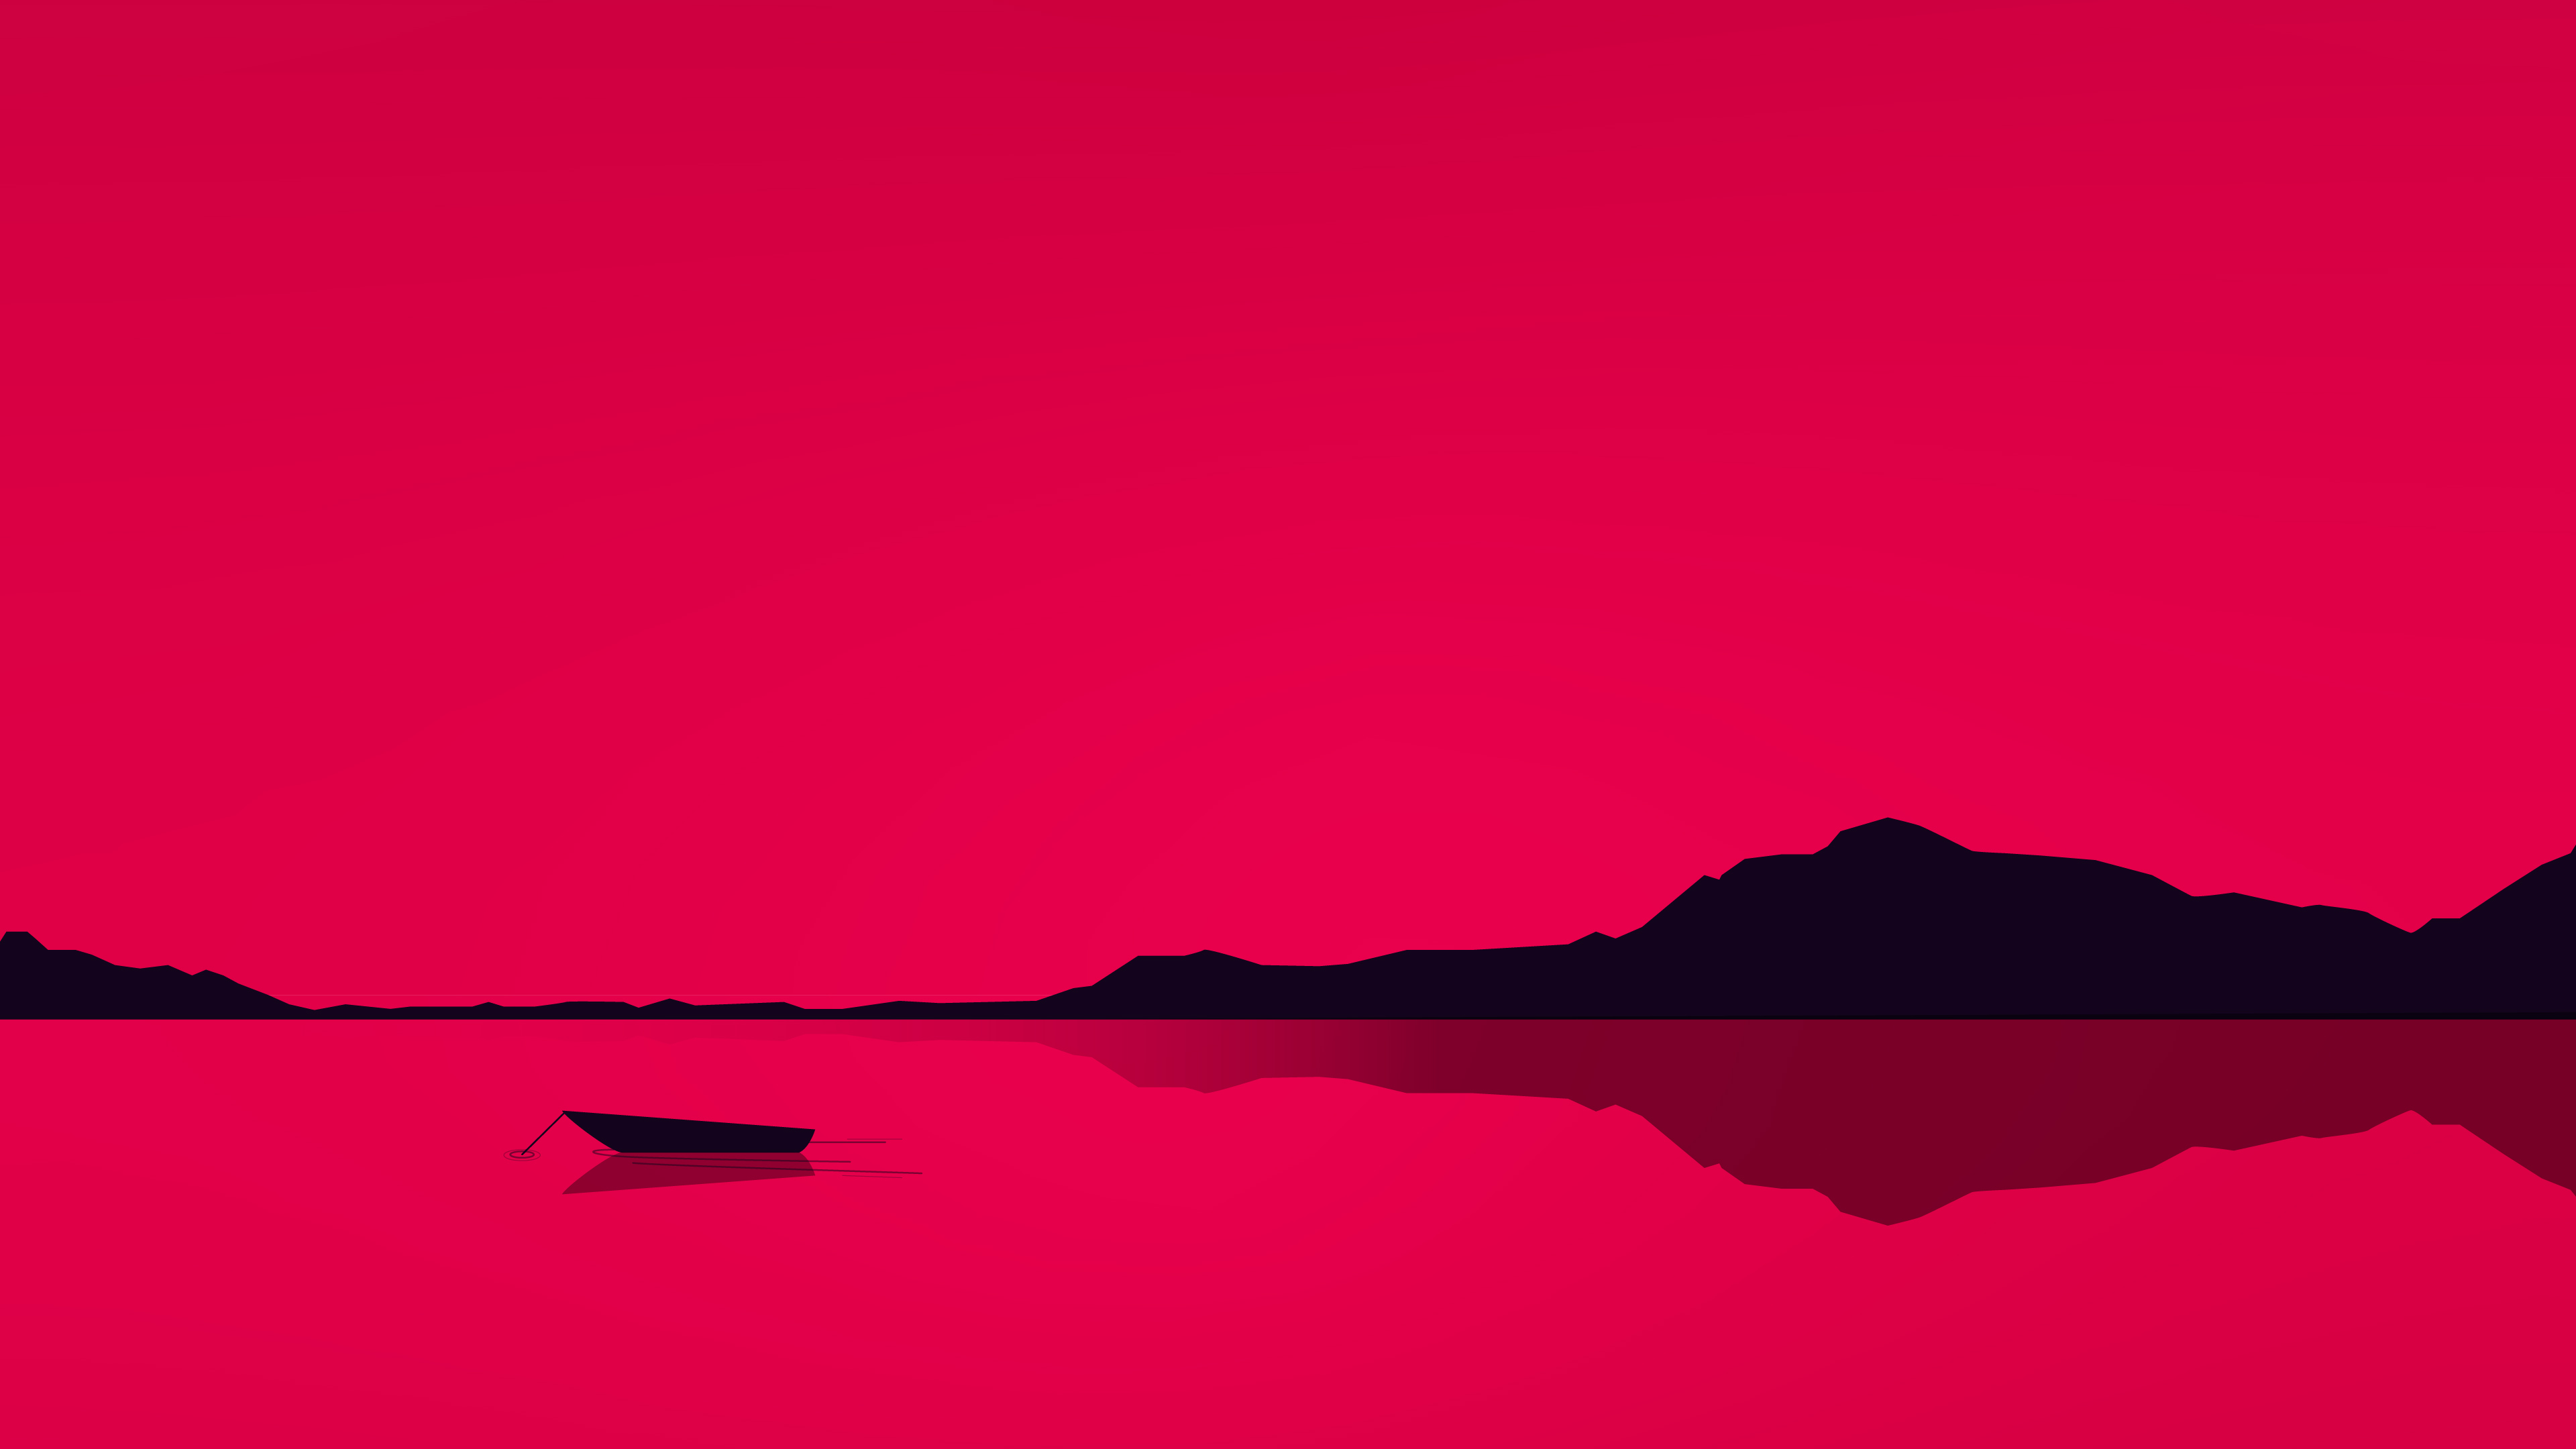 lake minimal red 4k 1608658629 - Lake Minimal Red 4k - Lake Minimal Red 4k wallpapers